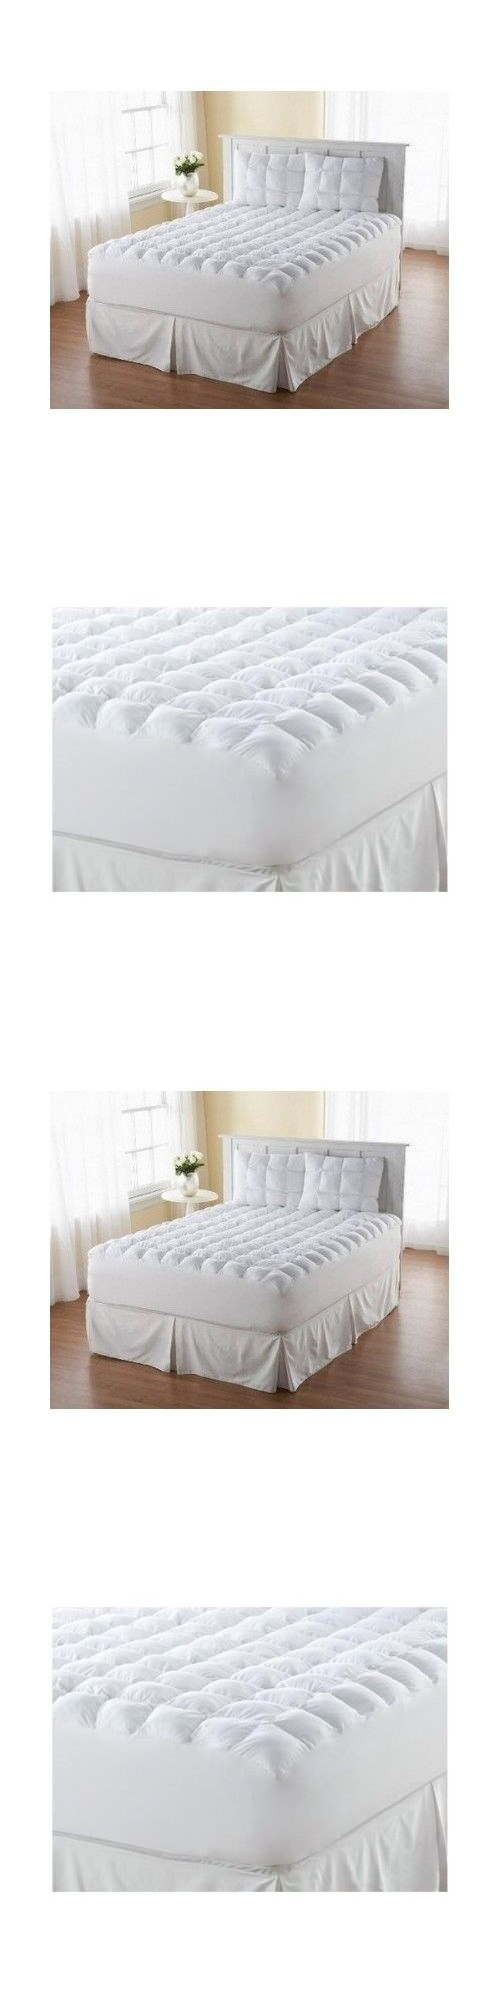 woodhaven top sets pads set mattress bedding industries queen pillow